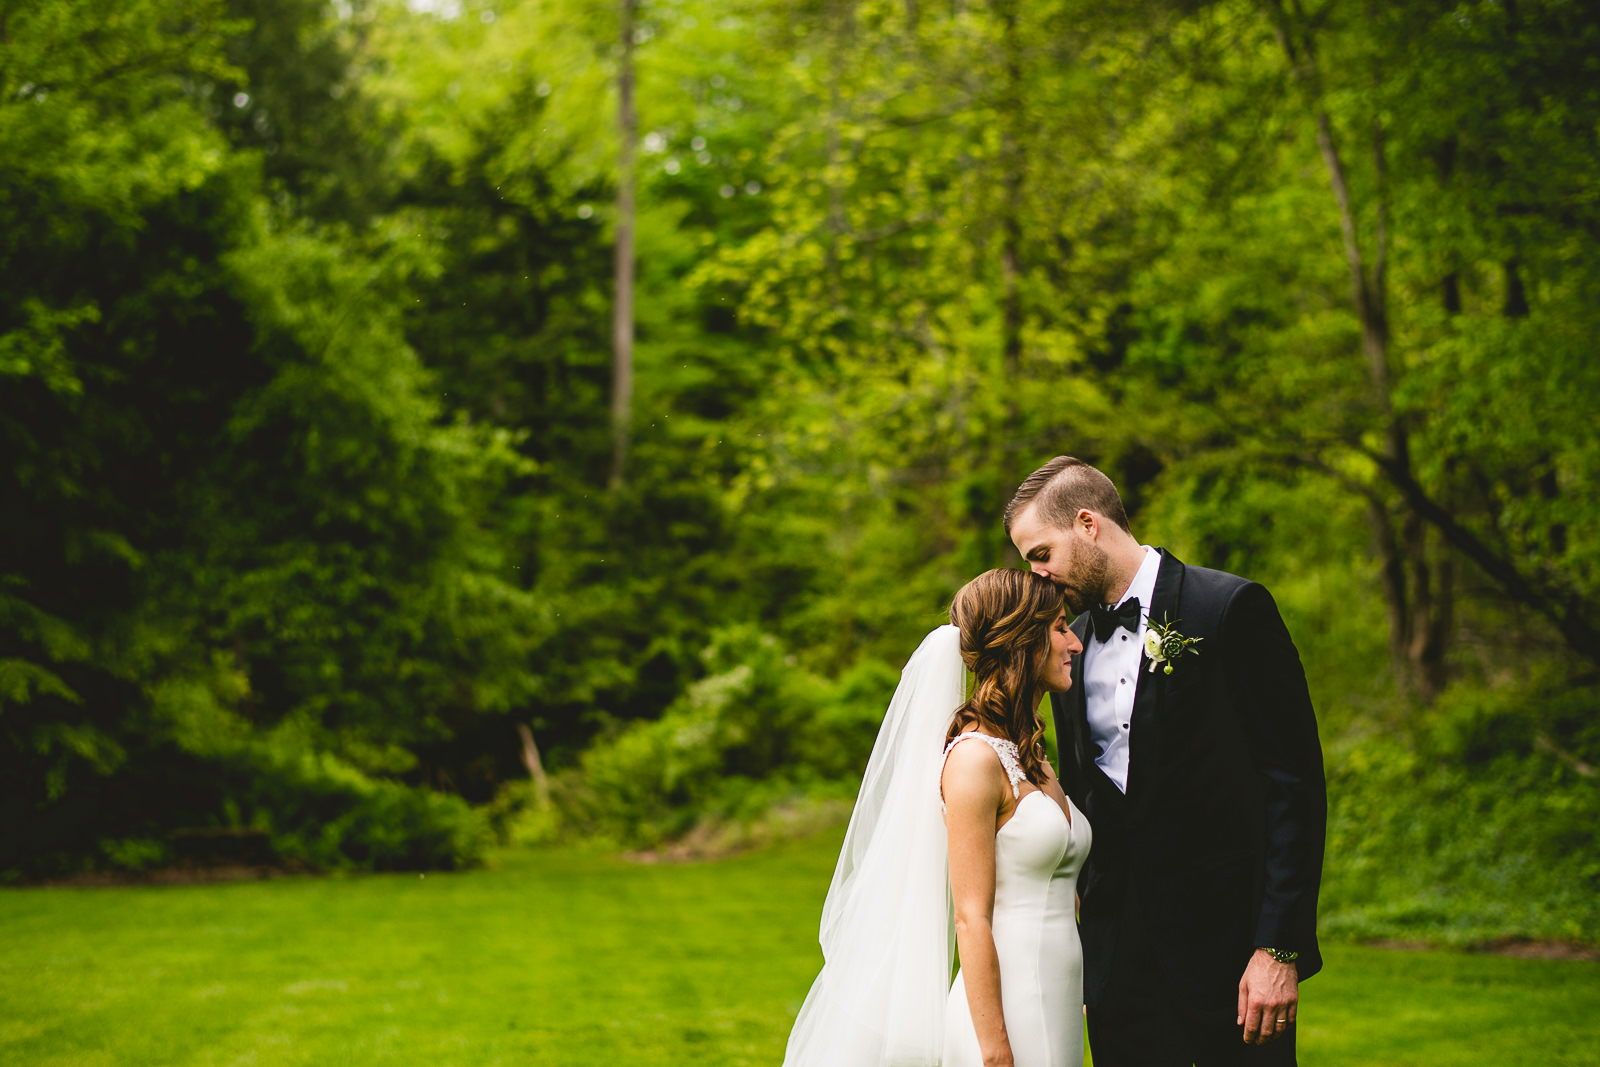 37 club of hillbrook wedding photos - Club of Hillbrook Wedding // Jenna + Ben